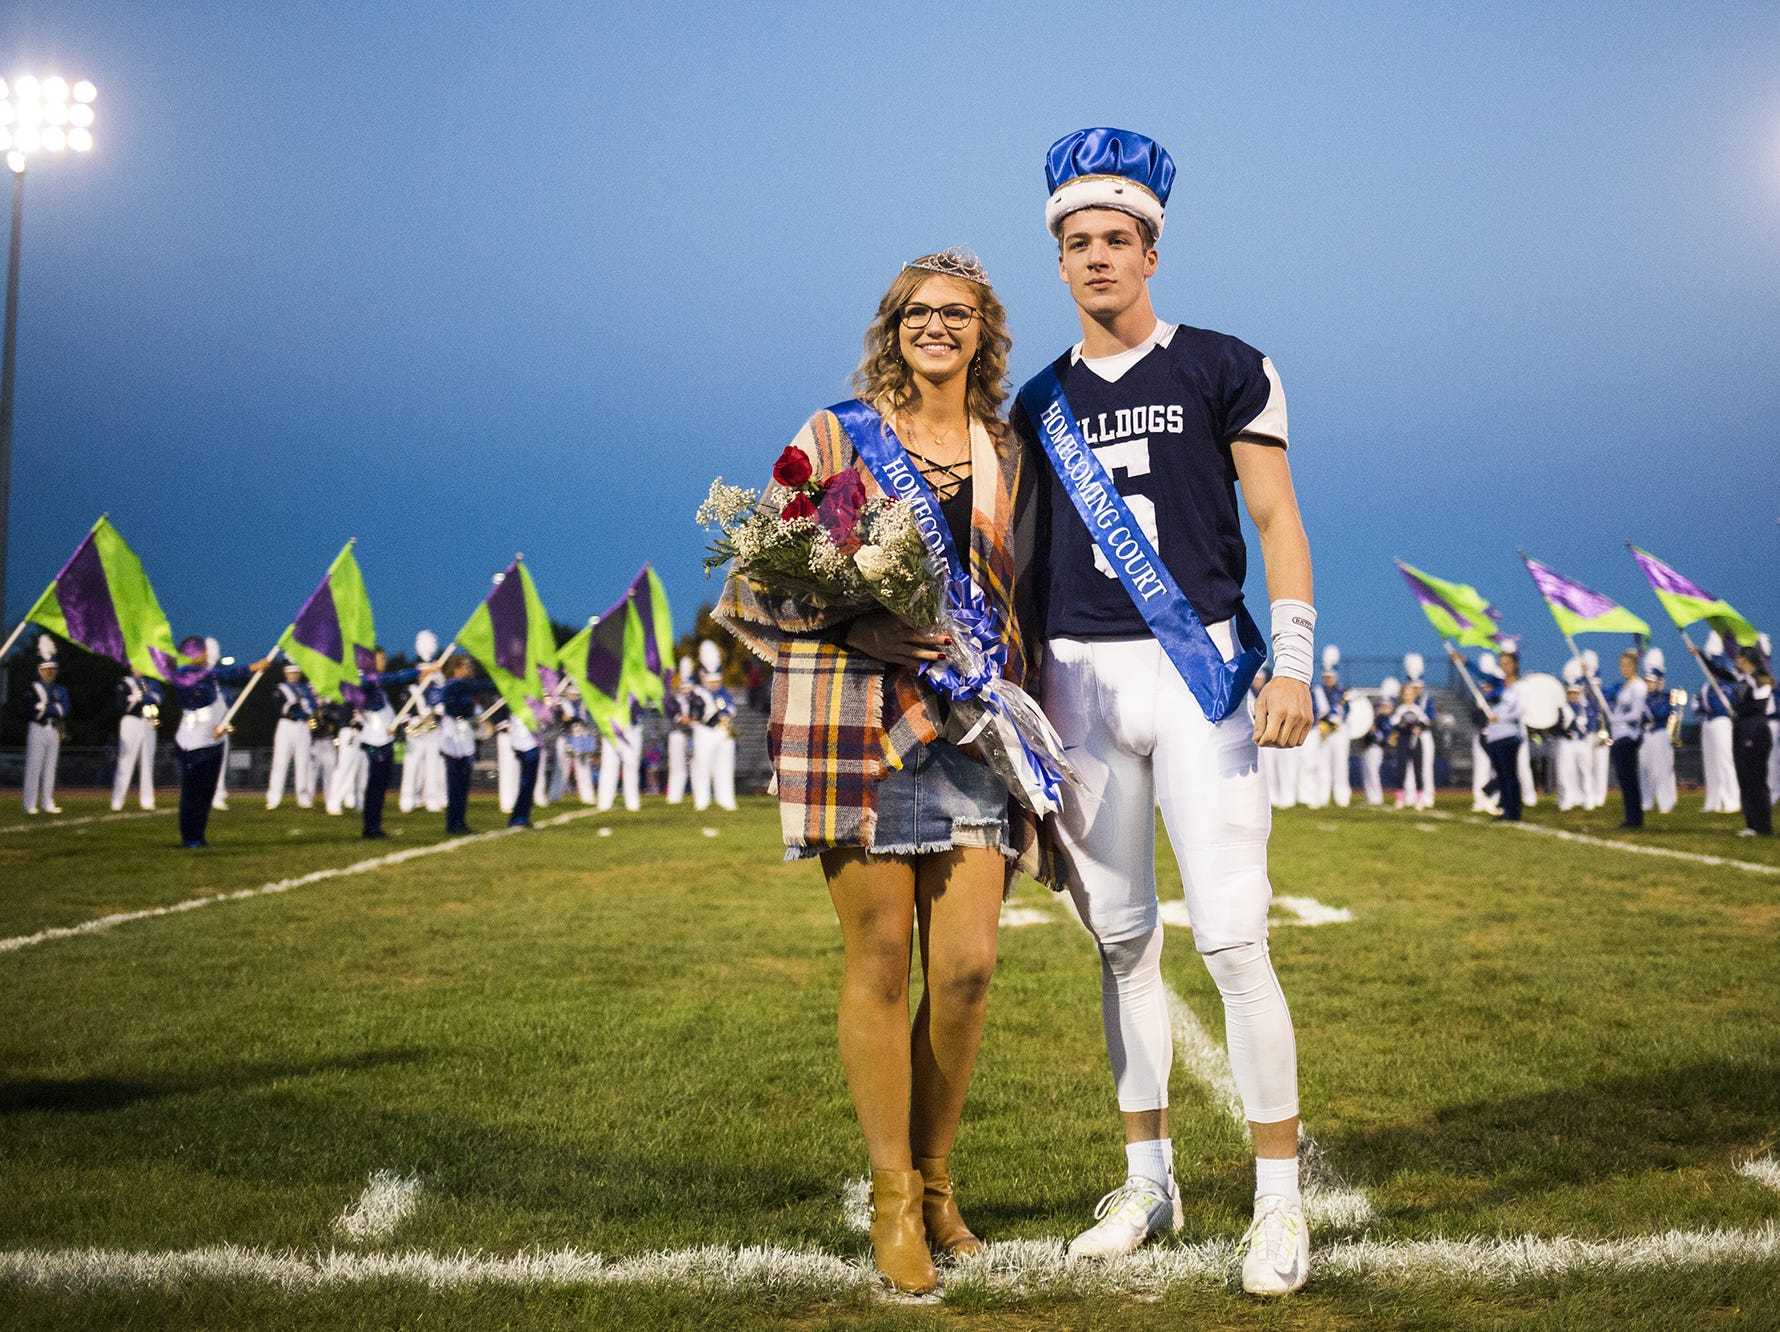 West York Area High School homecoming queen Taylor Haroldson and king Andrew LaManna. West York plays Kennard-Dale in football at West York Area High School in West York, Friday, October 12, 2018.